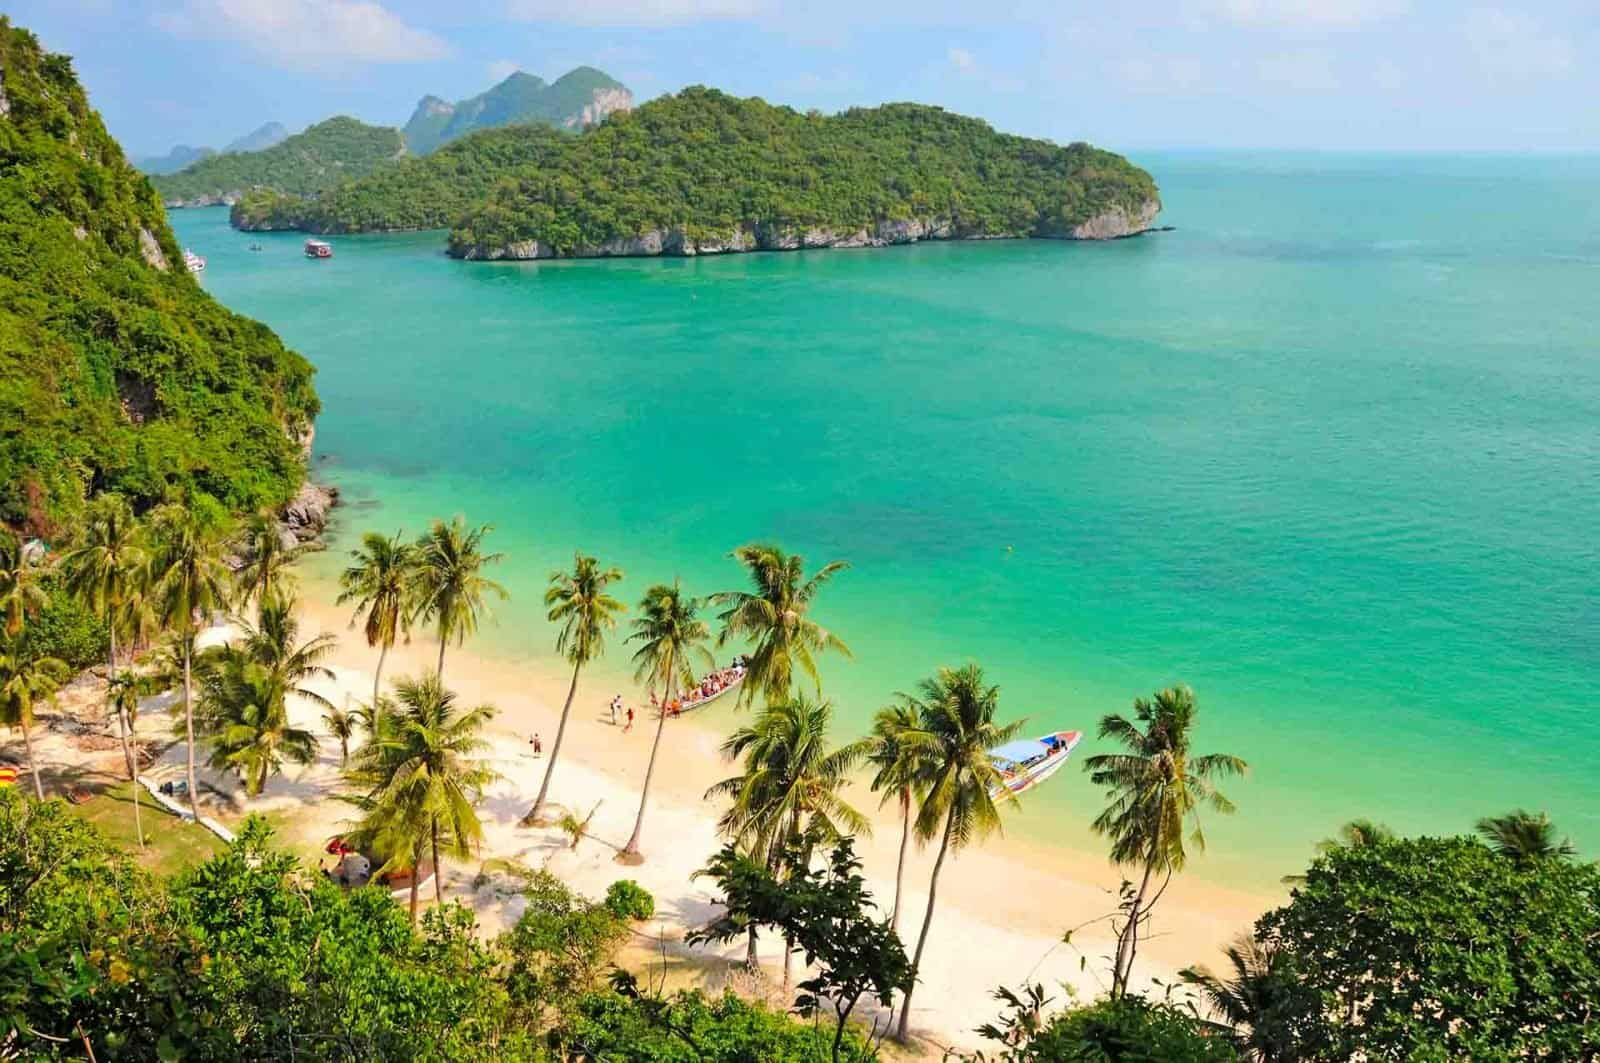 Beautiful archipelago of 42 tropical islands, View from Wua Talap Island, Boat Trip from Koh Samui to Ang Thong National Marine Park, Thailand